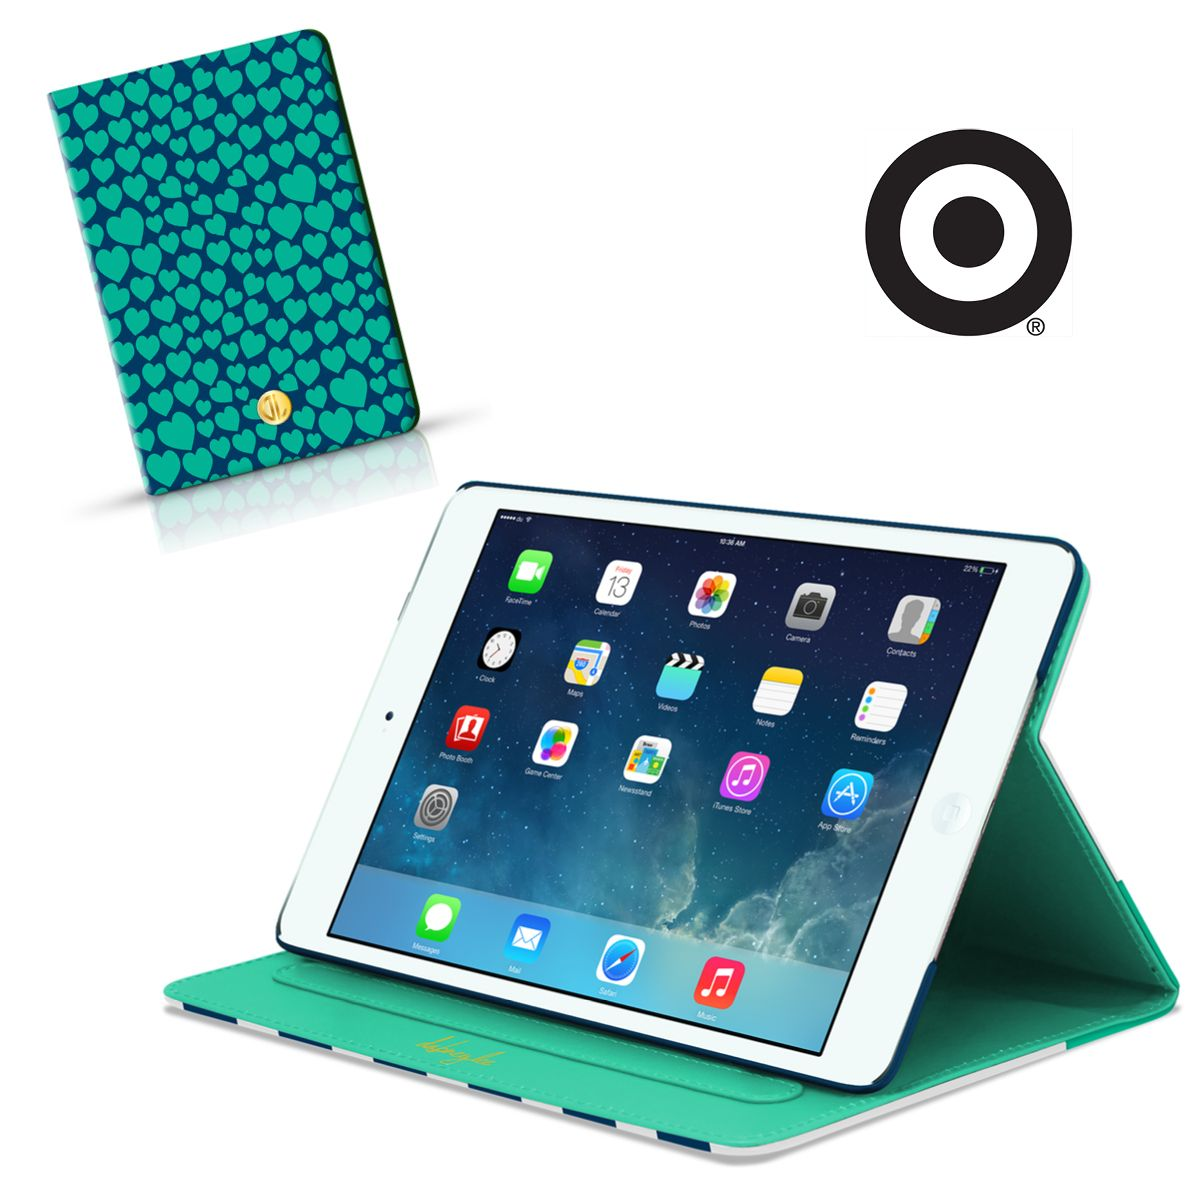 notebook style, magnetic closure, automatic sleep and wake function, direct access to device features, and two viewing angles. what more could you want in an ipad case? grab one for your mini or air at a Target Style store near you or online: http://www.dabneylee.com/dabney-lee-target/. #dabneyleelovestarget #dabneyleetech